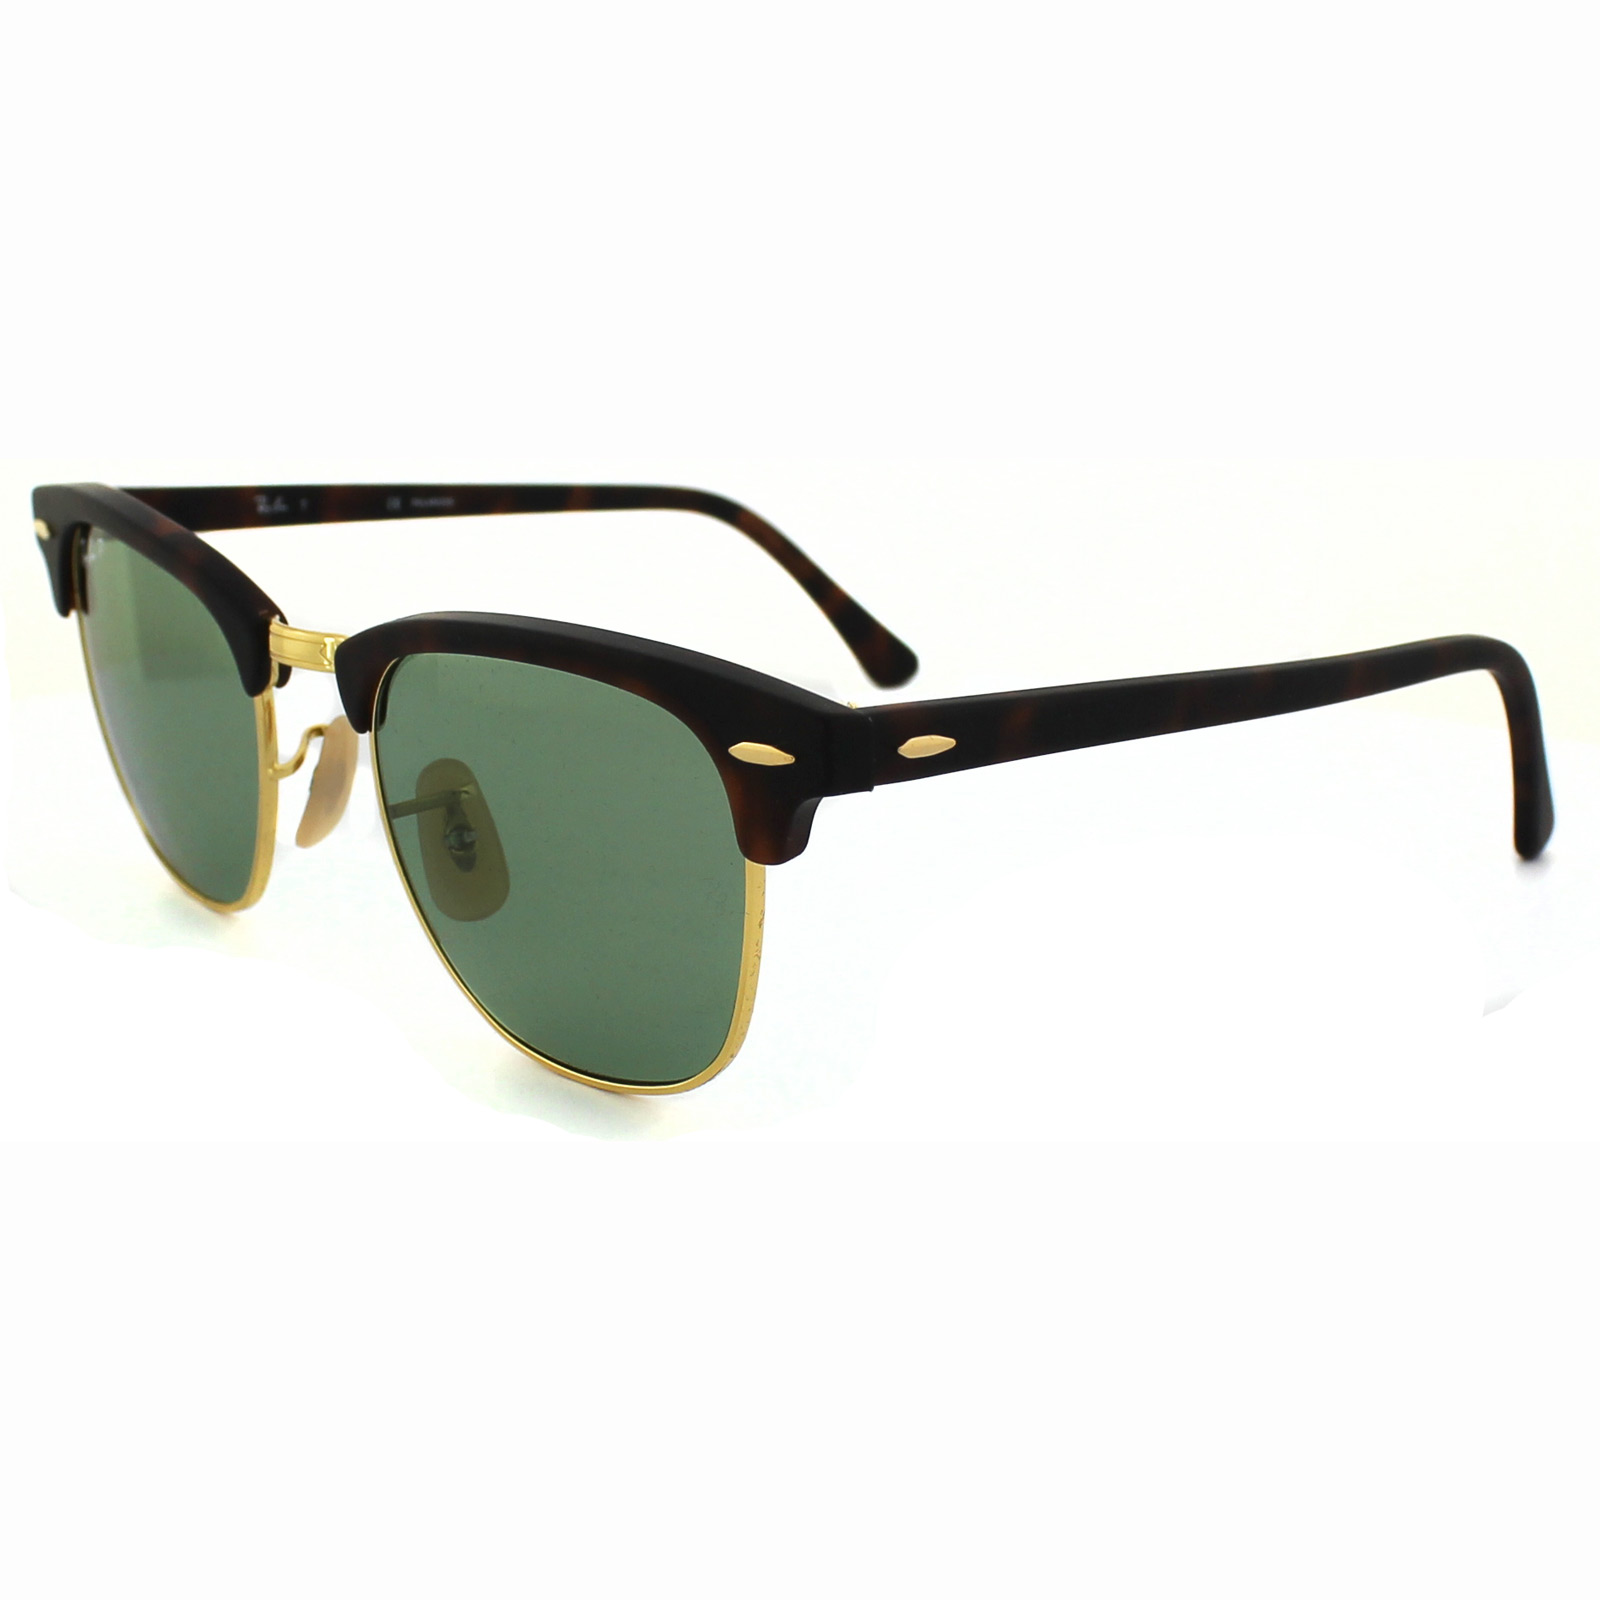 3ff6ee08183 Ray Ban Clubmaster 3016 Green « Heritage Malta